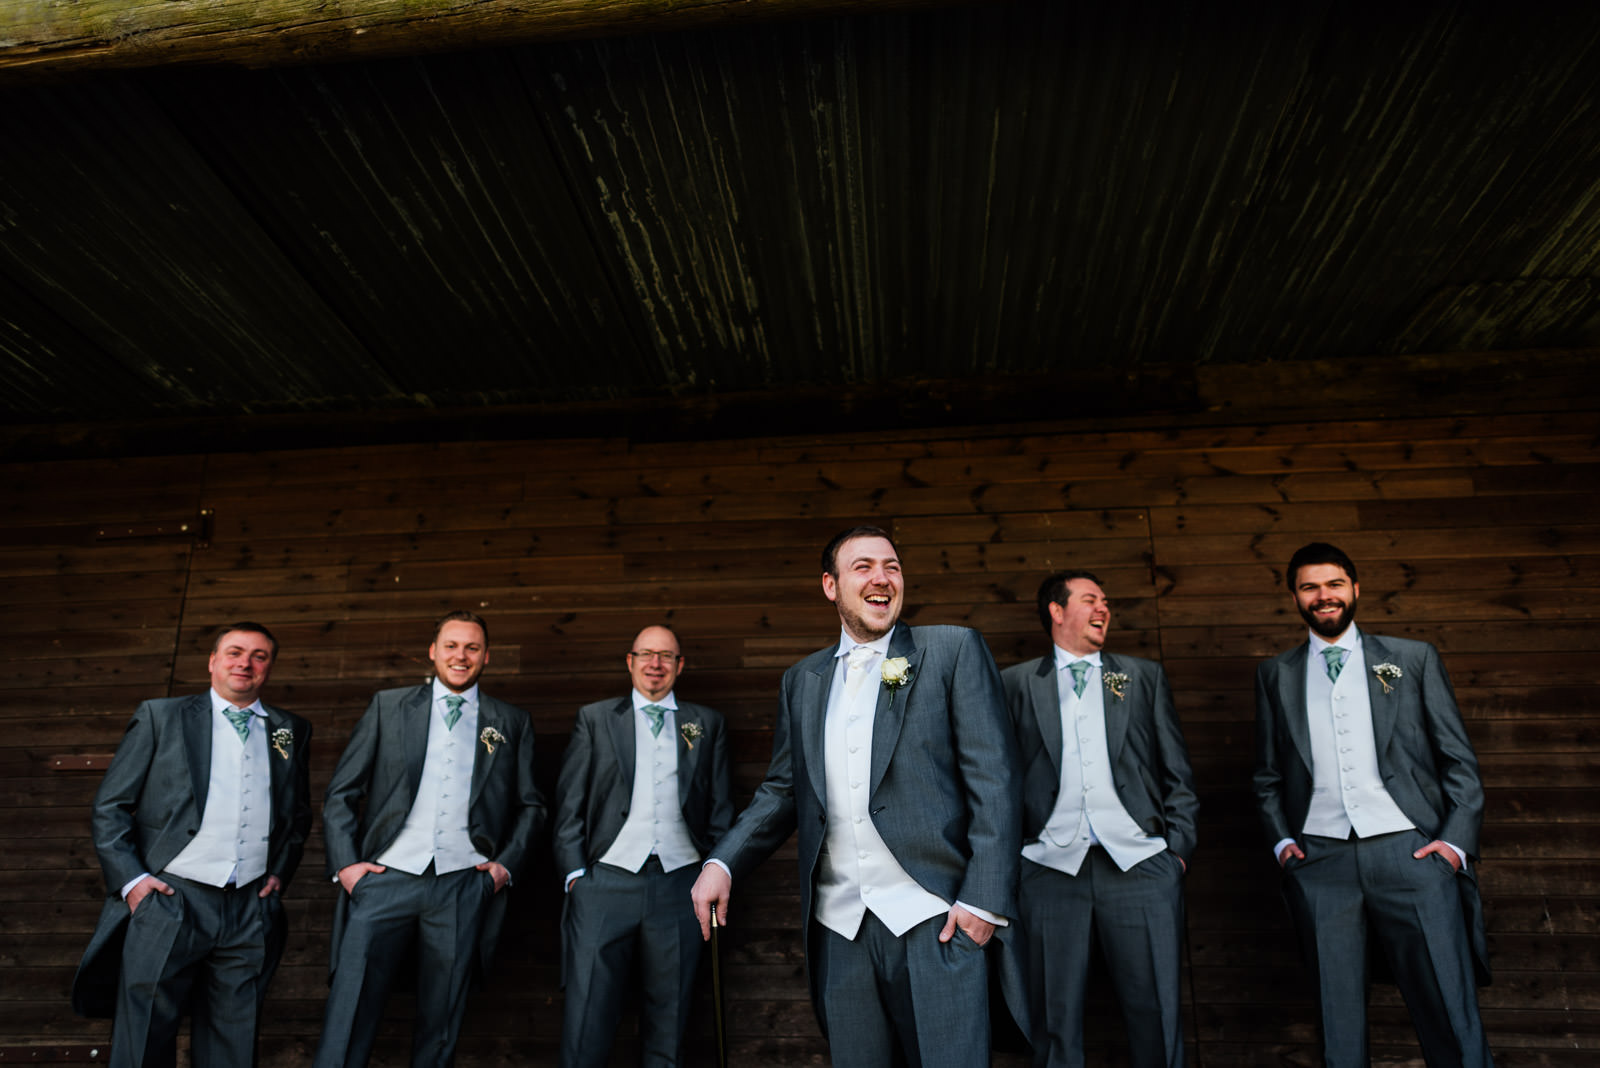 Richard and his groomsmen